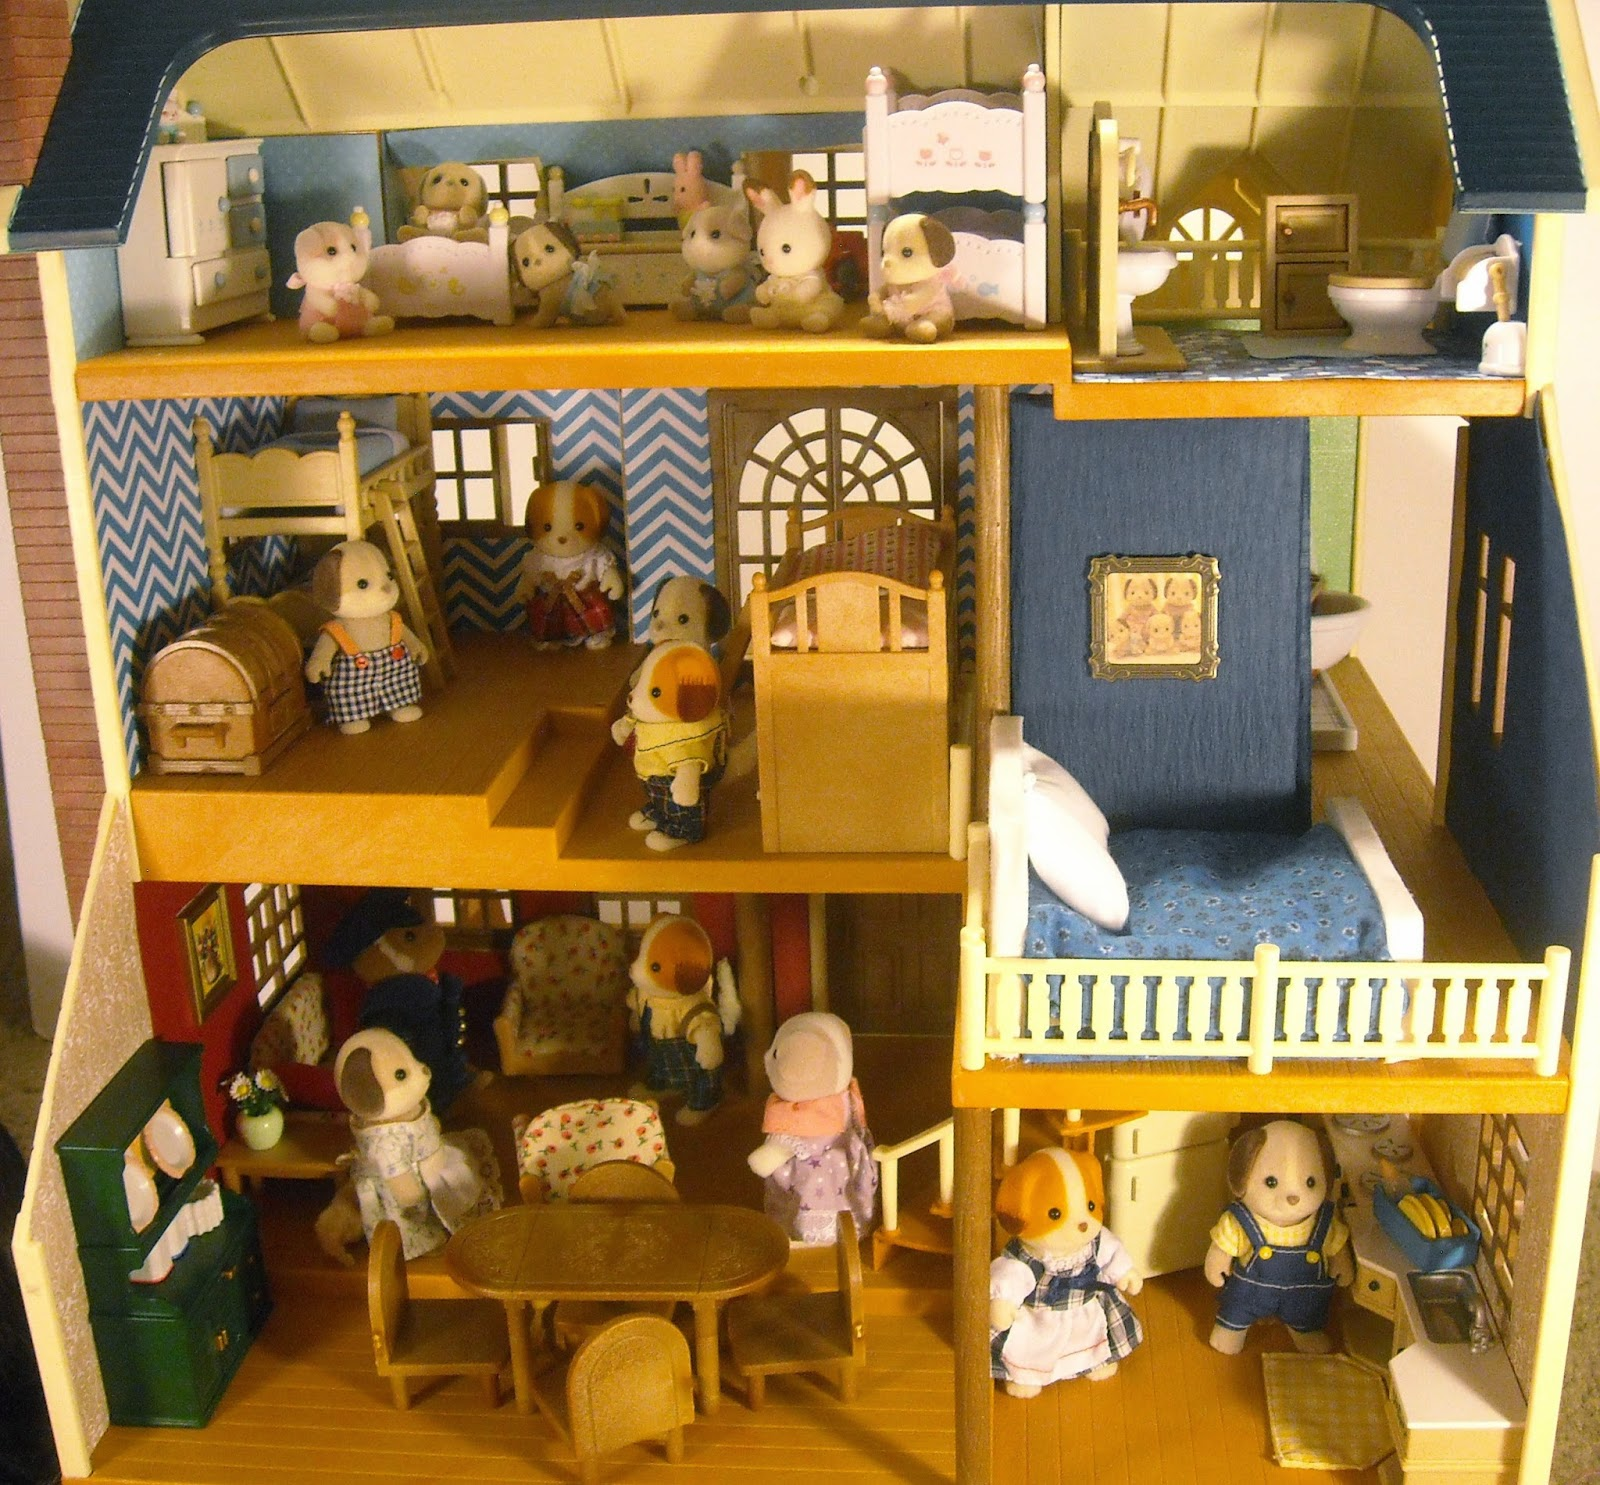 Luxury Dollhouse Wallpaper: Calico Critters Wallpaper